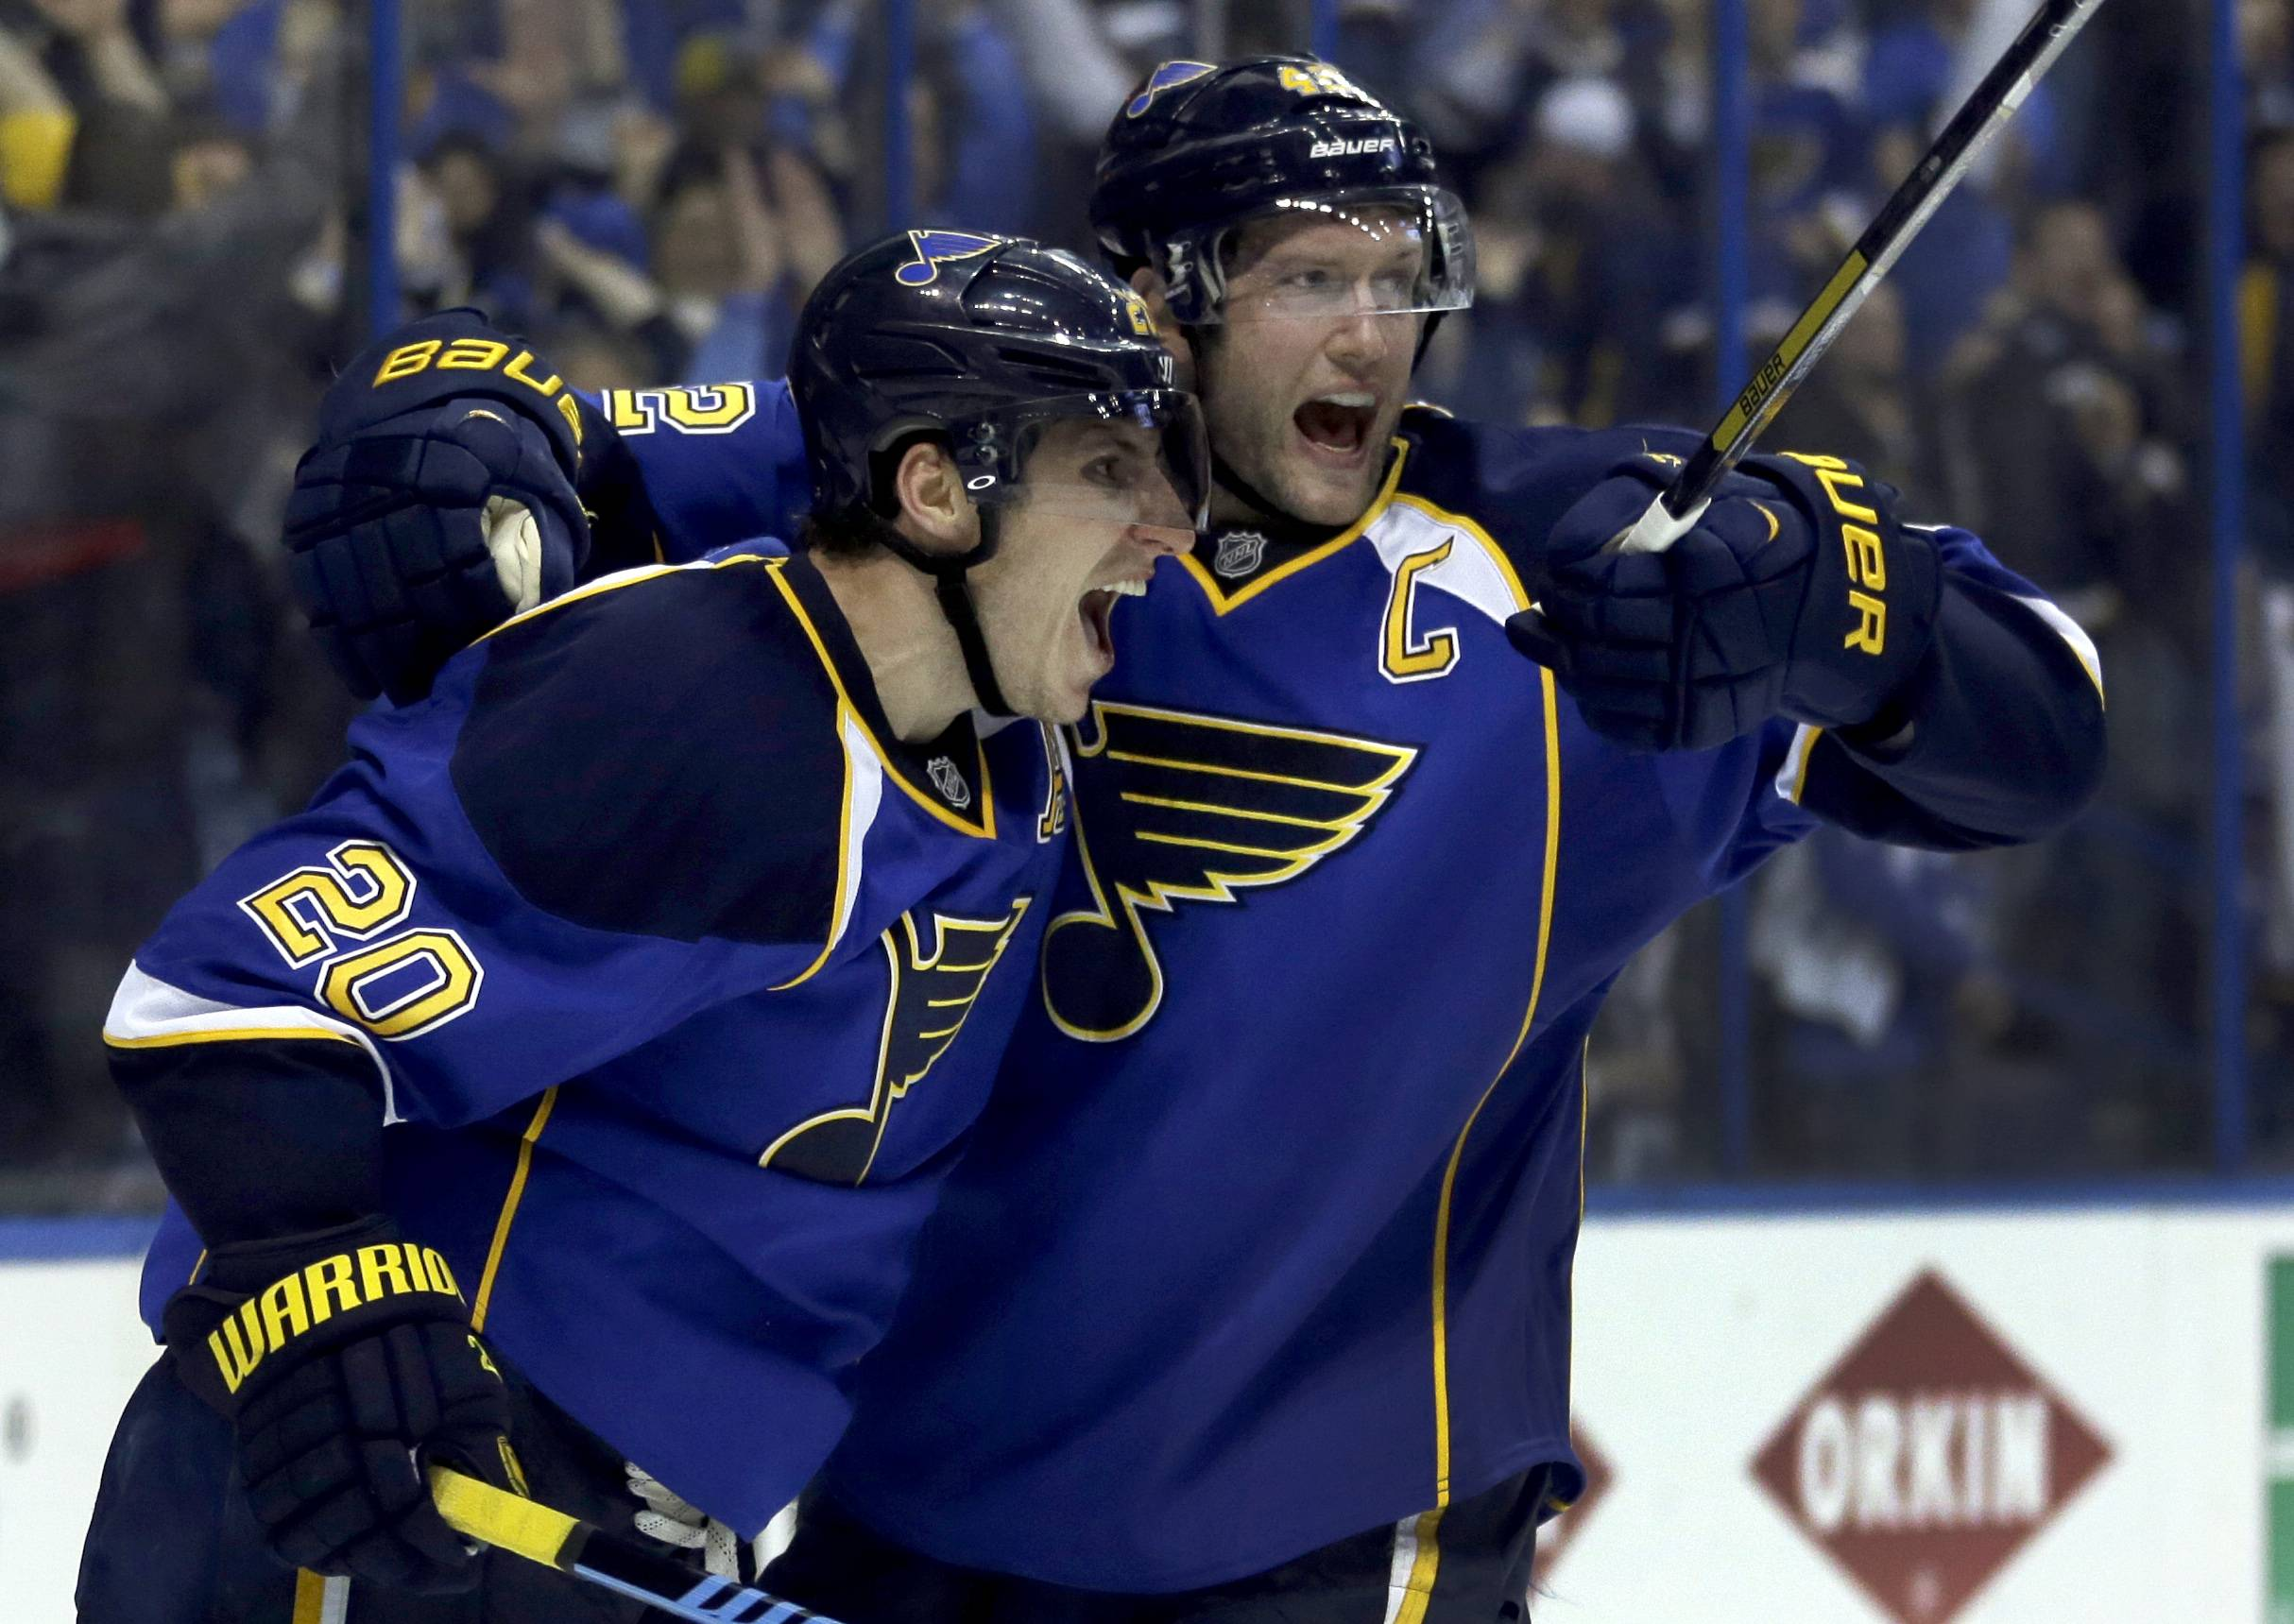 St. Louis Blues' Alexander Steen, left, is congratulated by teammate David Backes after scoring the game-winning goal during the third overtime .